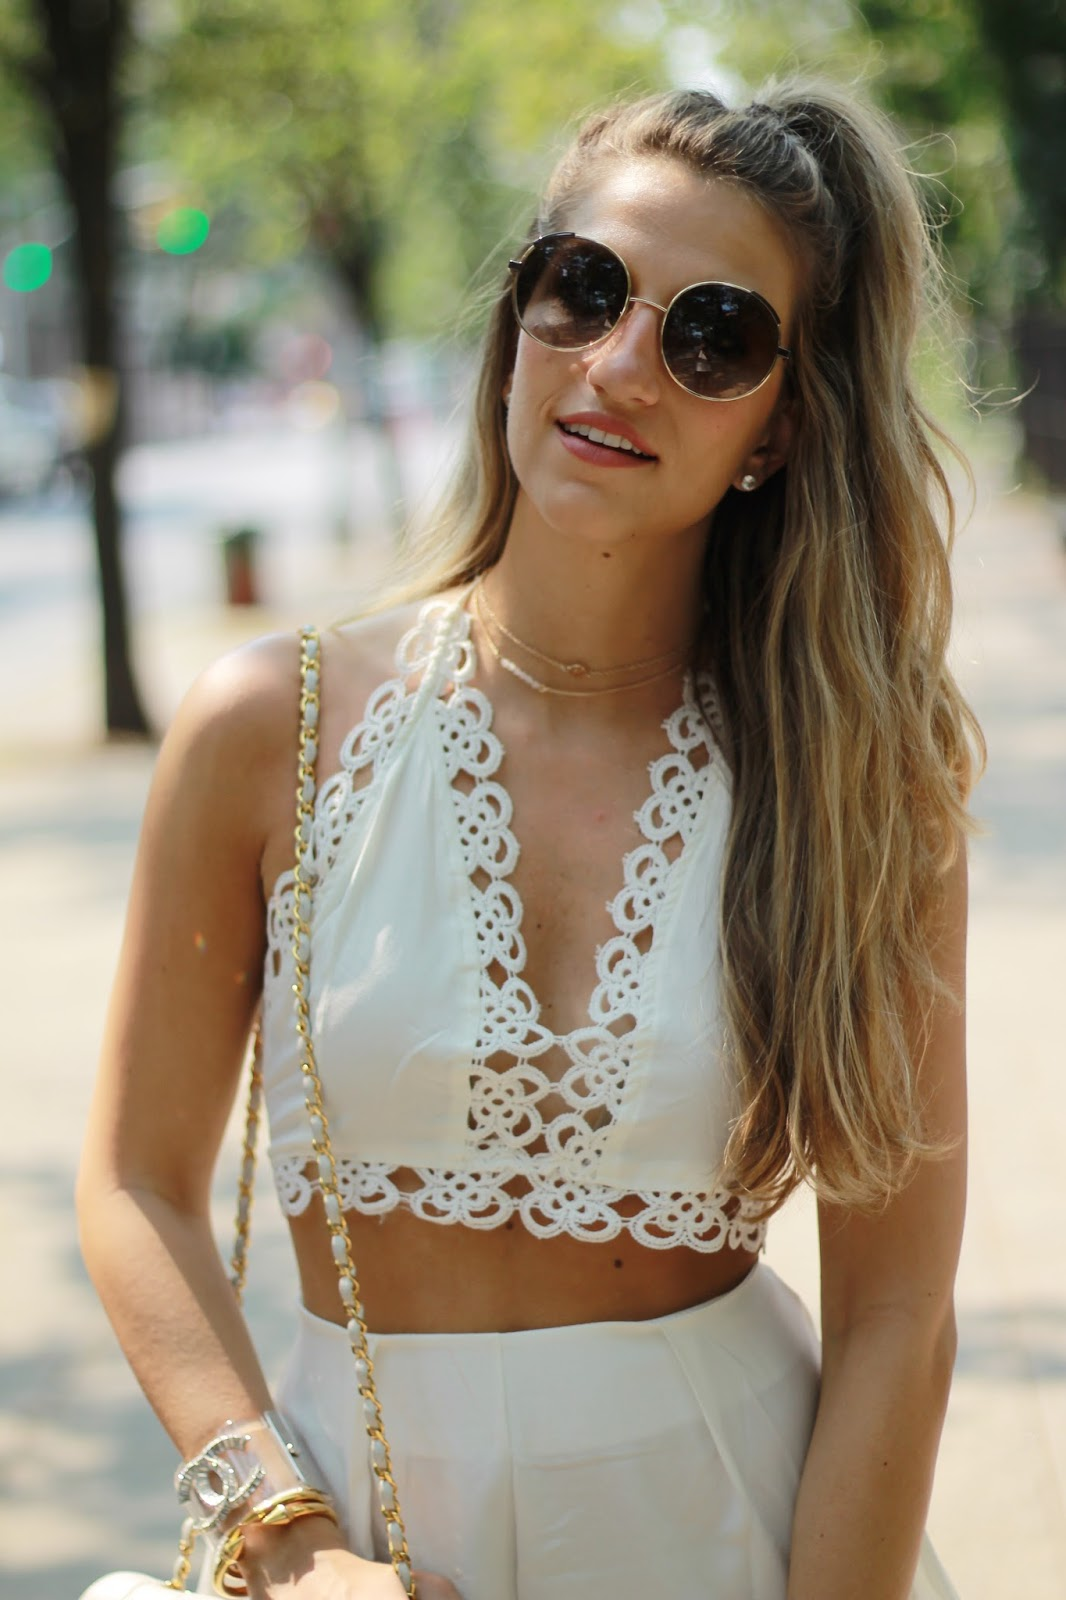 dressed for dreams in, chloe circle sunglasses, circle sunglasses, gold choker necklace